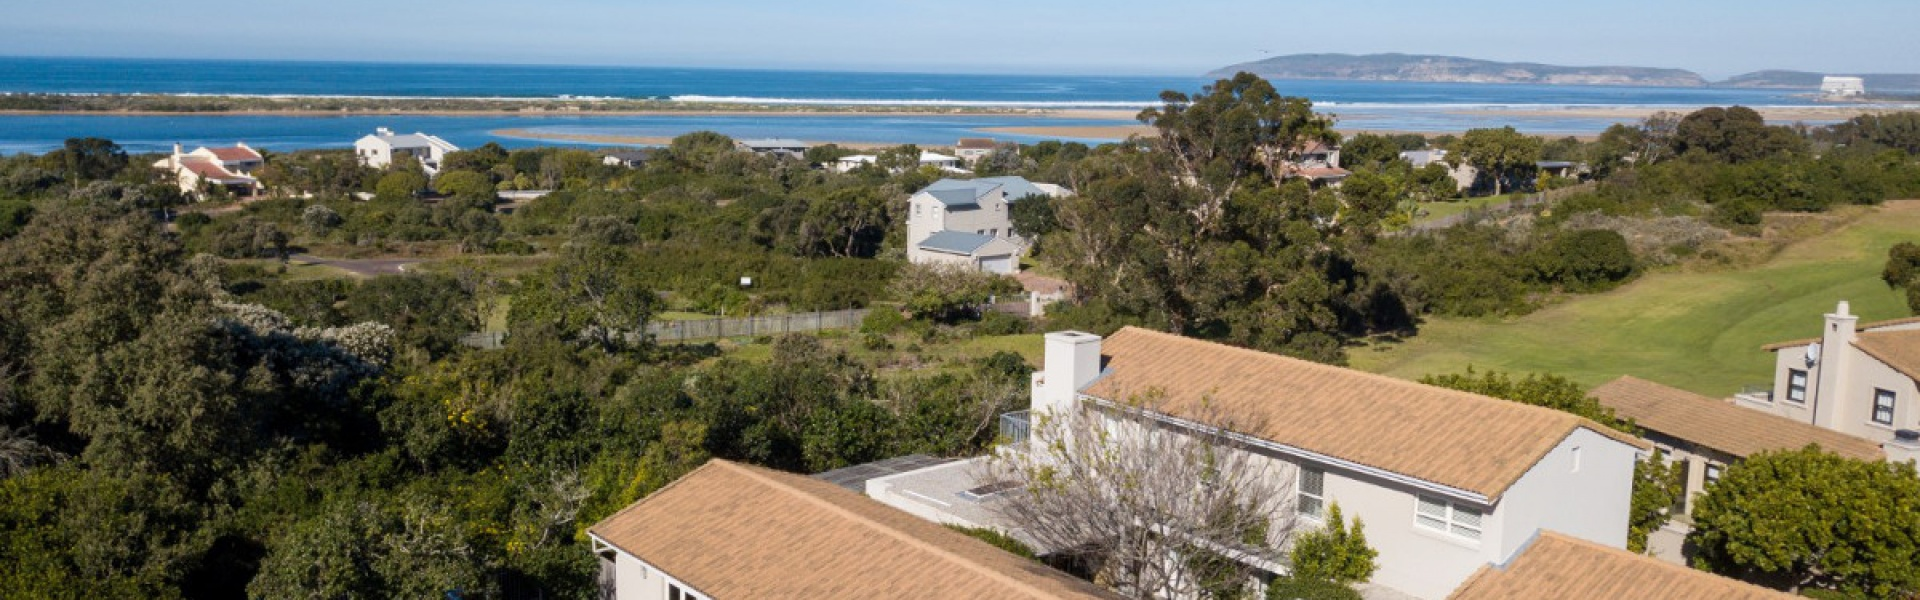 Plettenberg Bay, 6600, 4 Bedrooms Bedrooms, ,3 BathroomsBathrooms,Villa,For Sale,1070